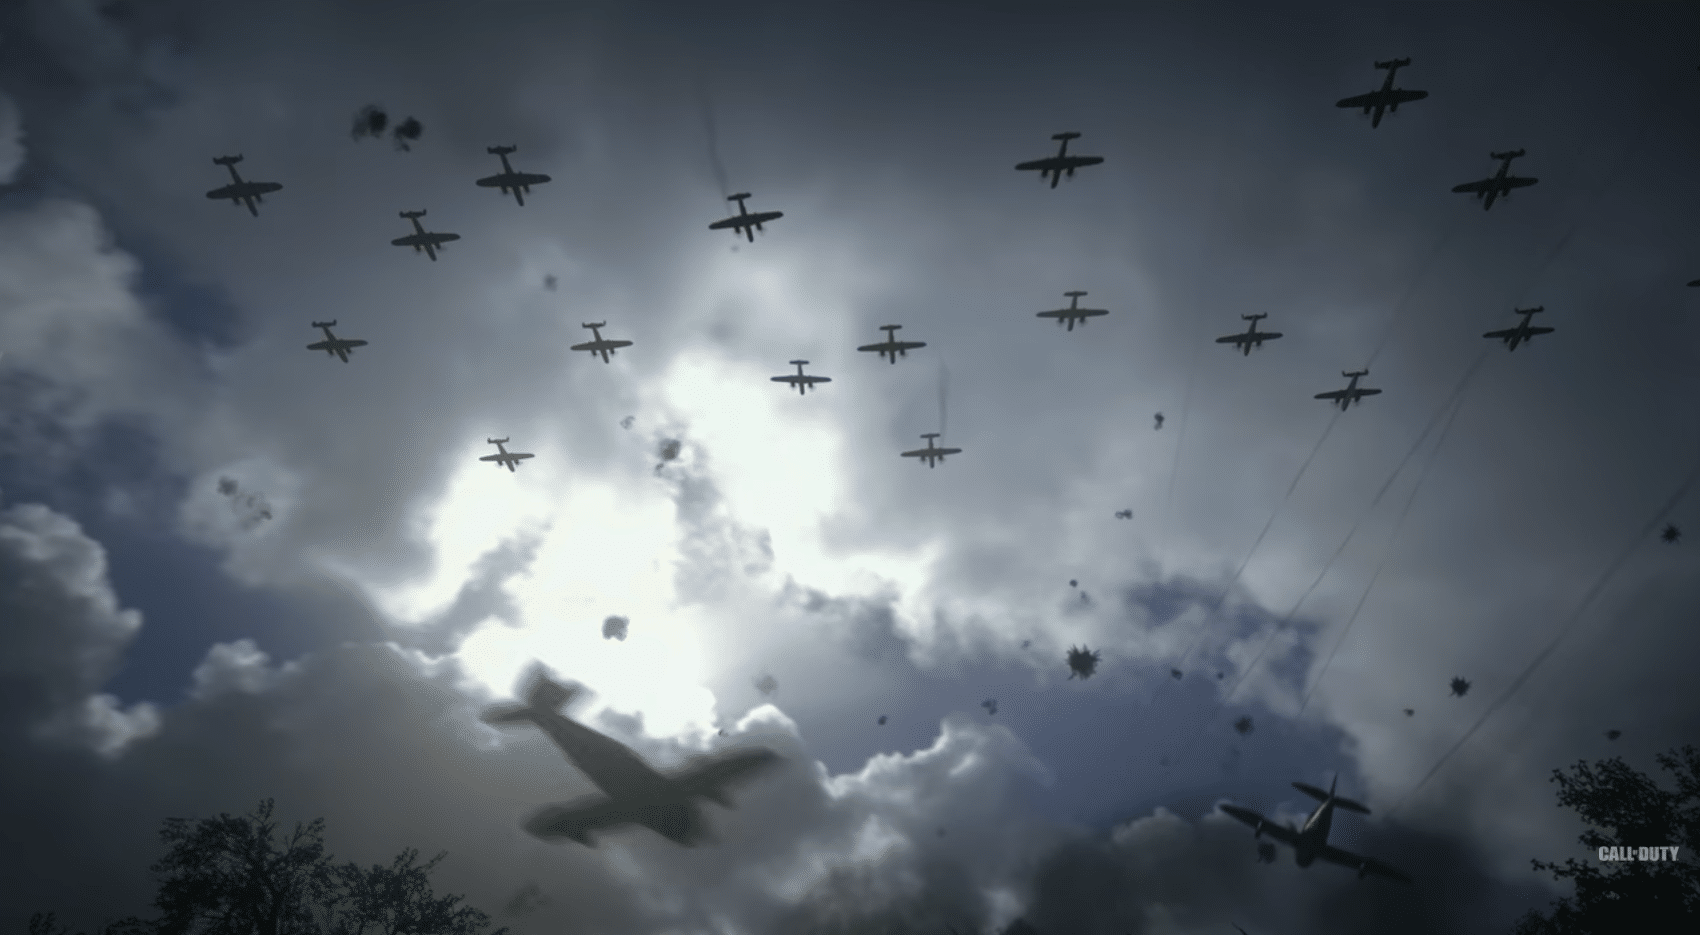 Call of Duty: WWII will feature MP maps in 'different ...